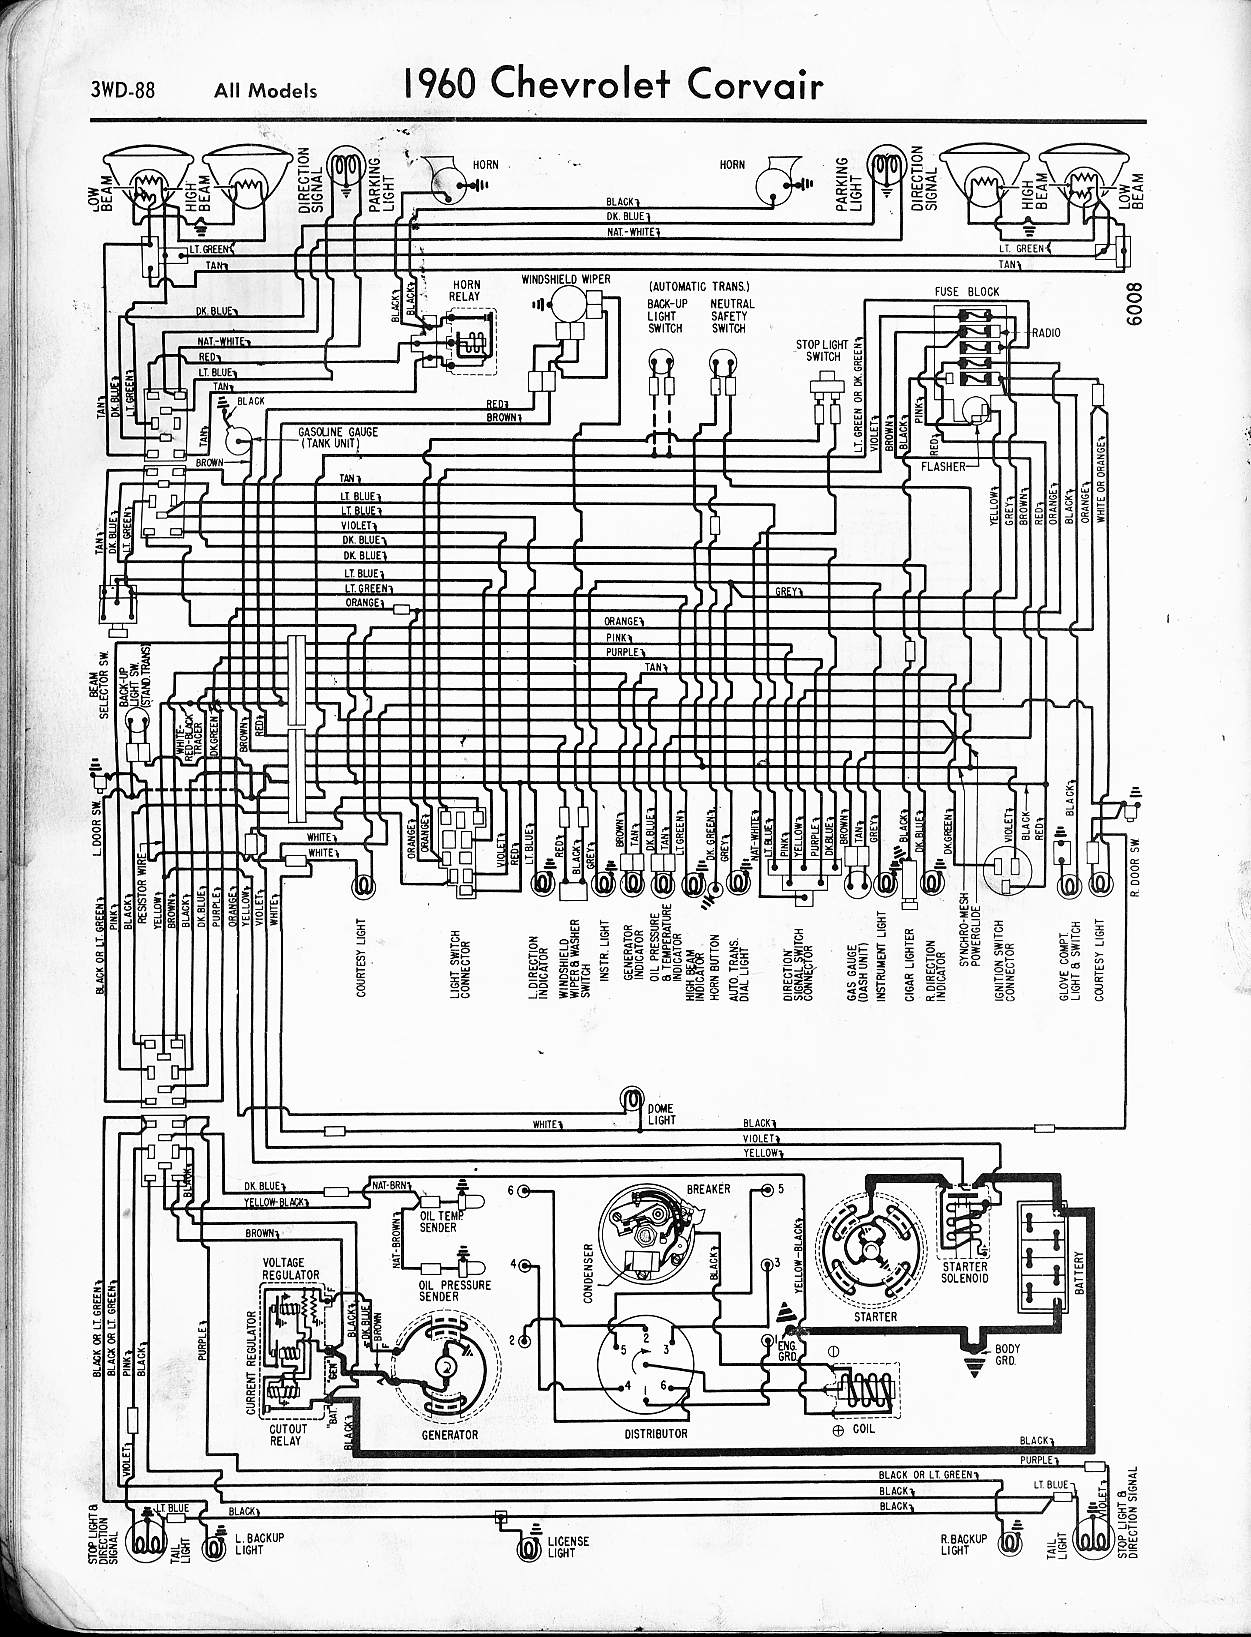 57 65 chevy wiring diagrams 1960 corvair